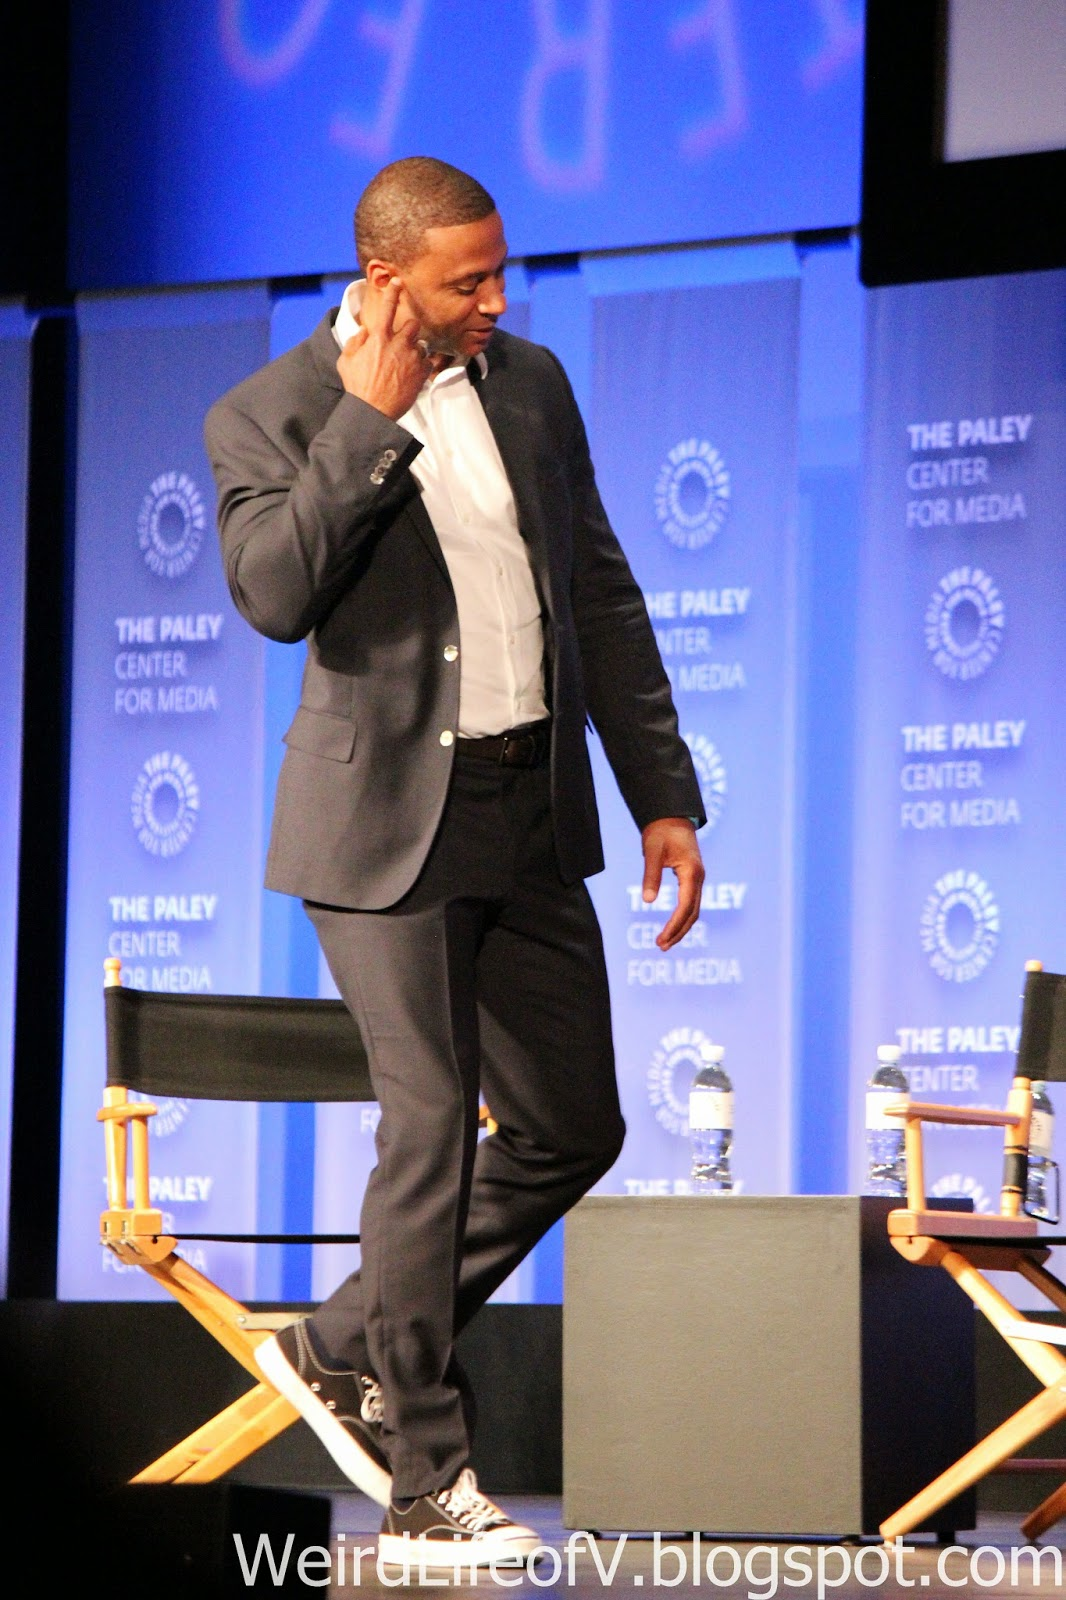 David Ramsey walking on stage